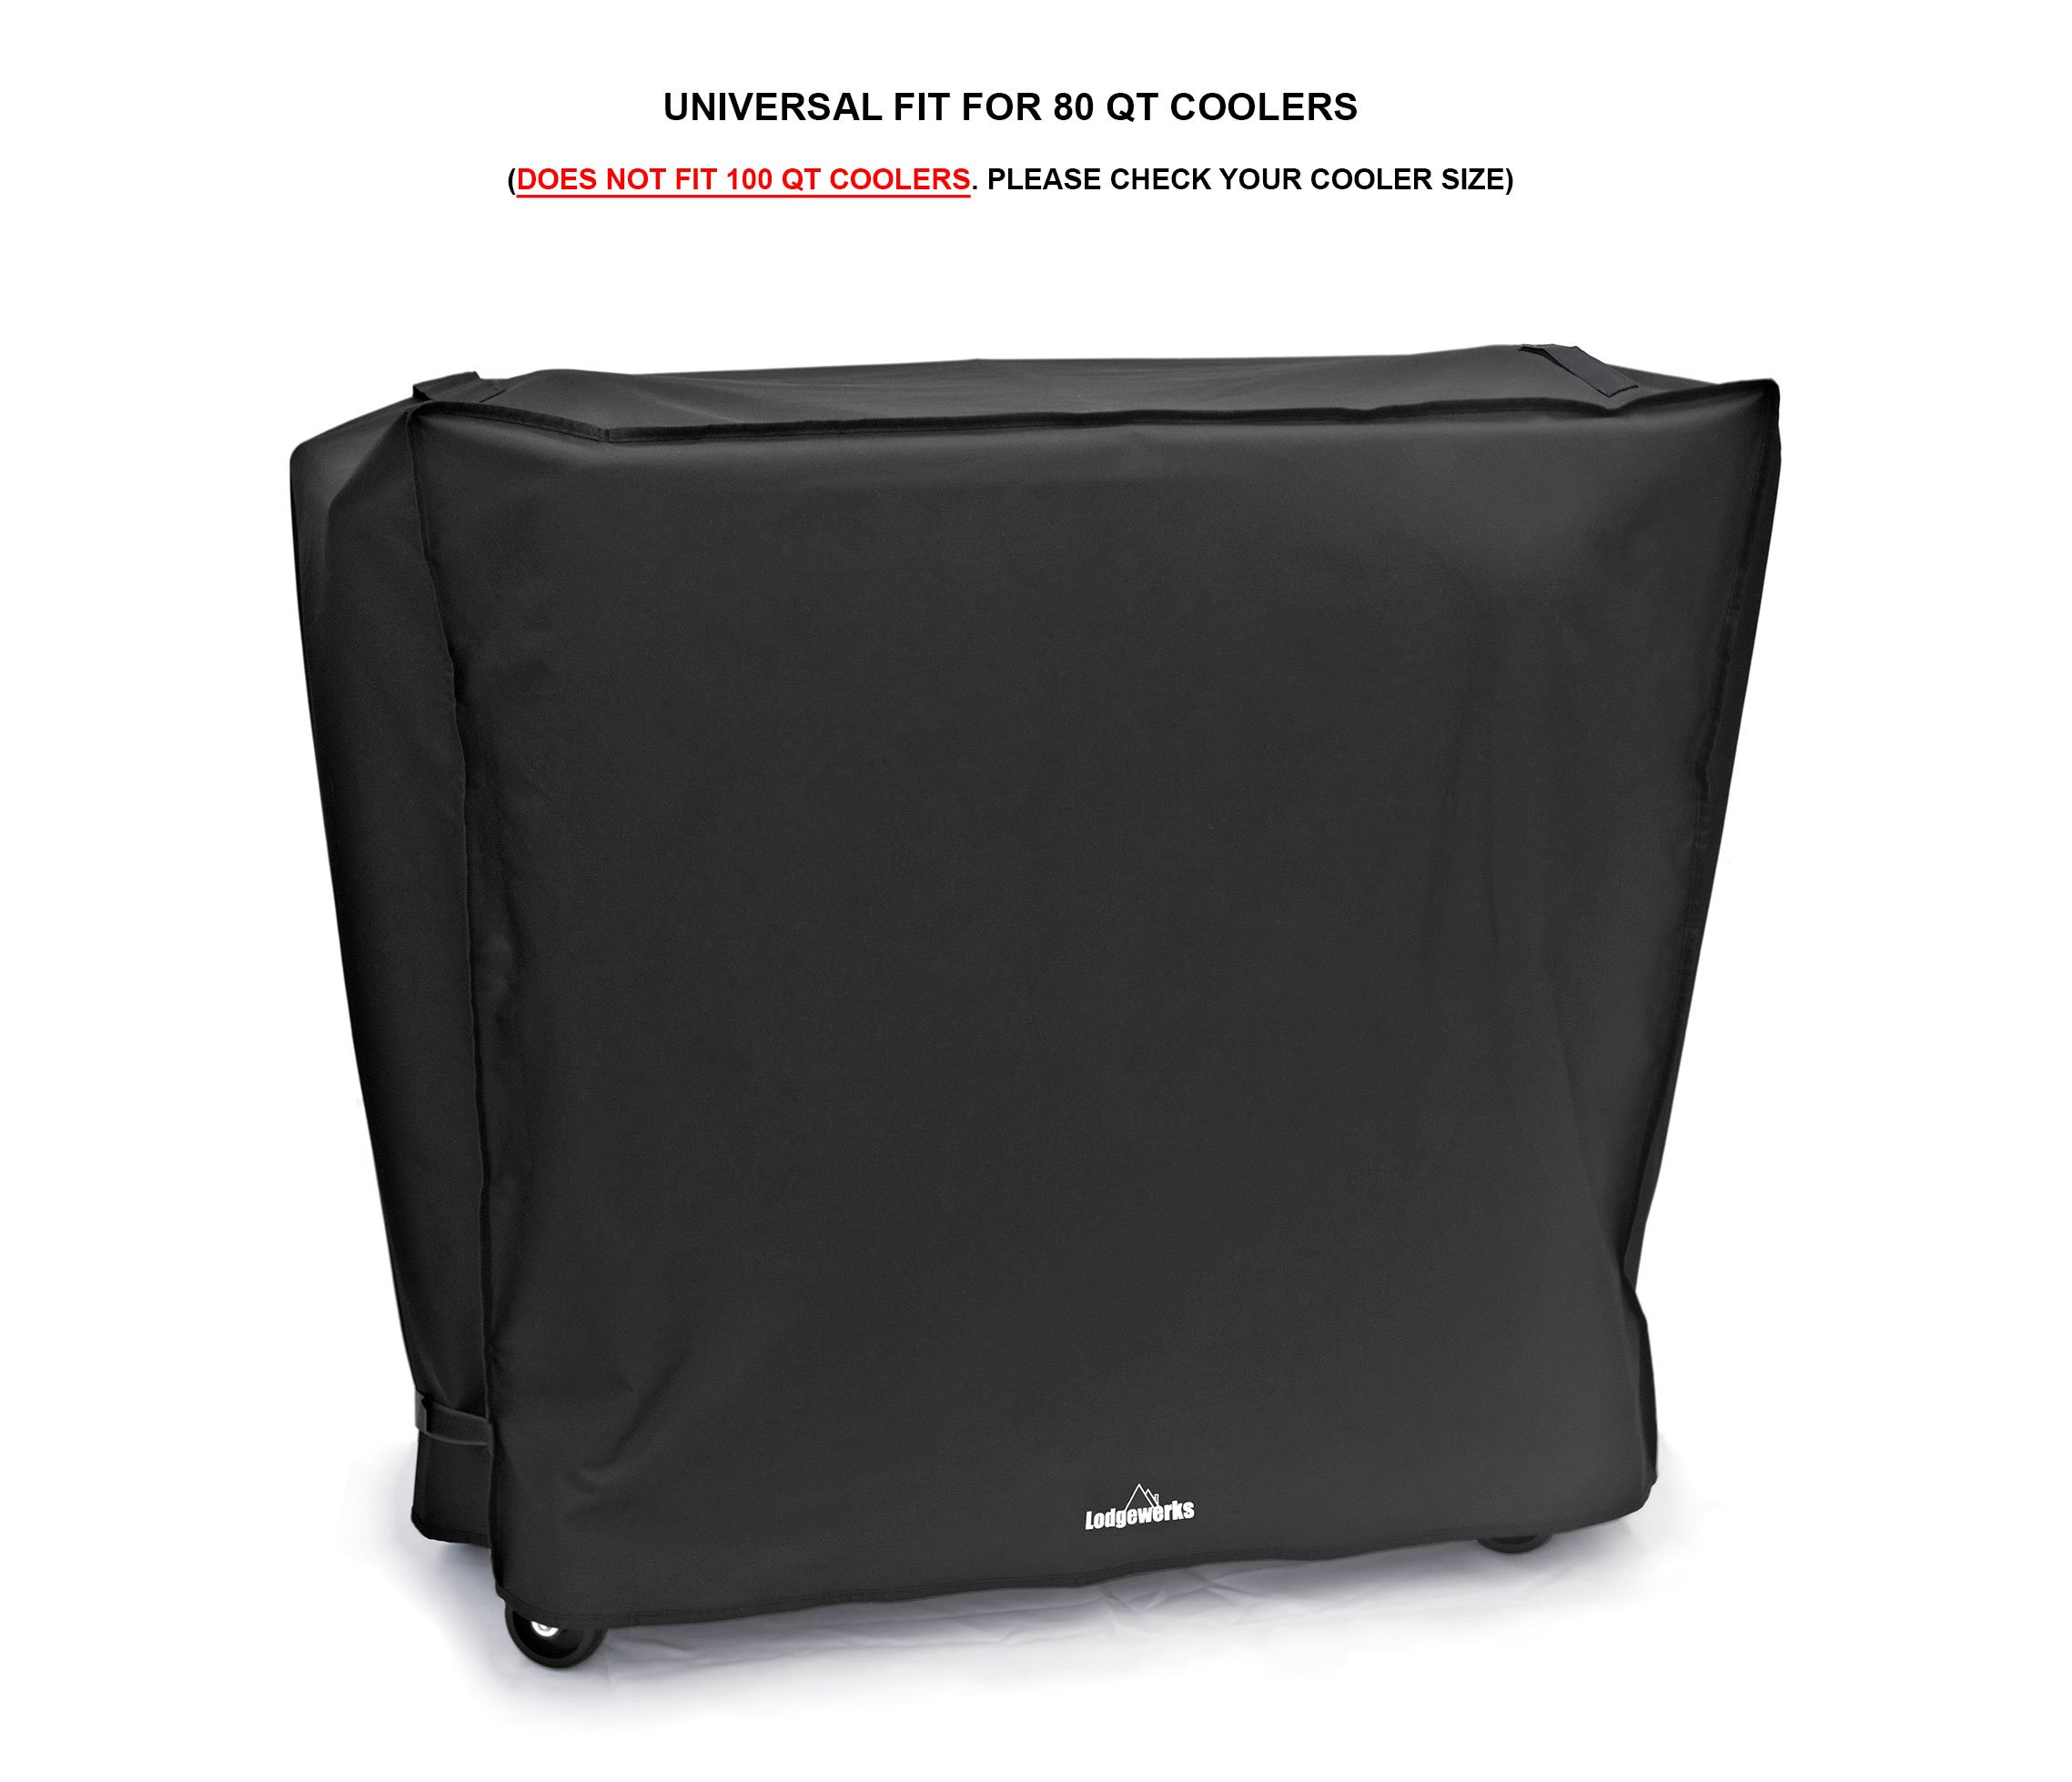 Cooler Cart Cover Universal Fit For Most 80 Qt Qt